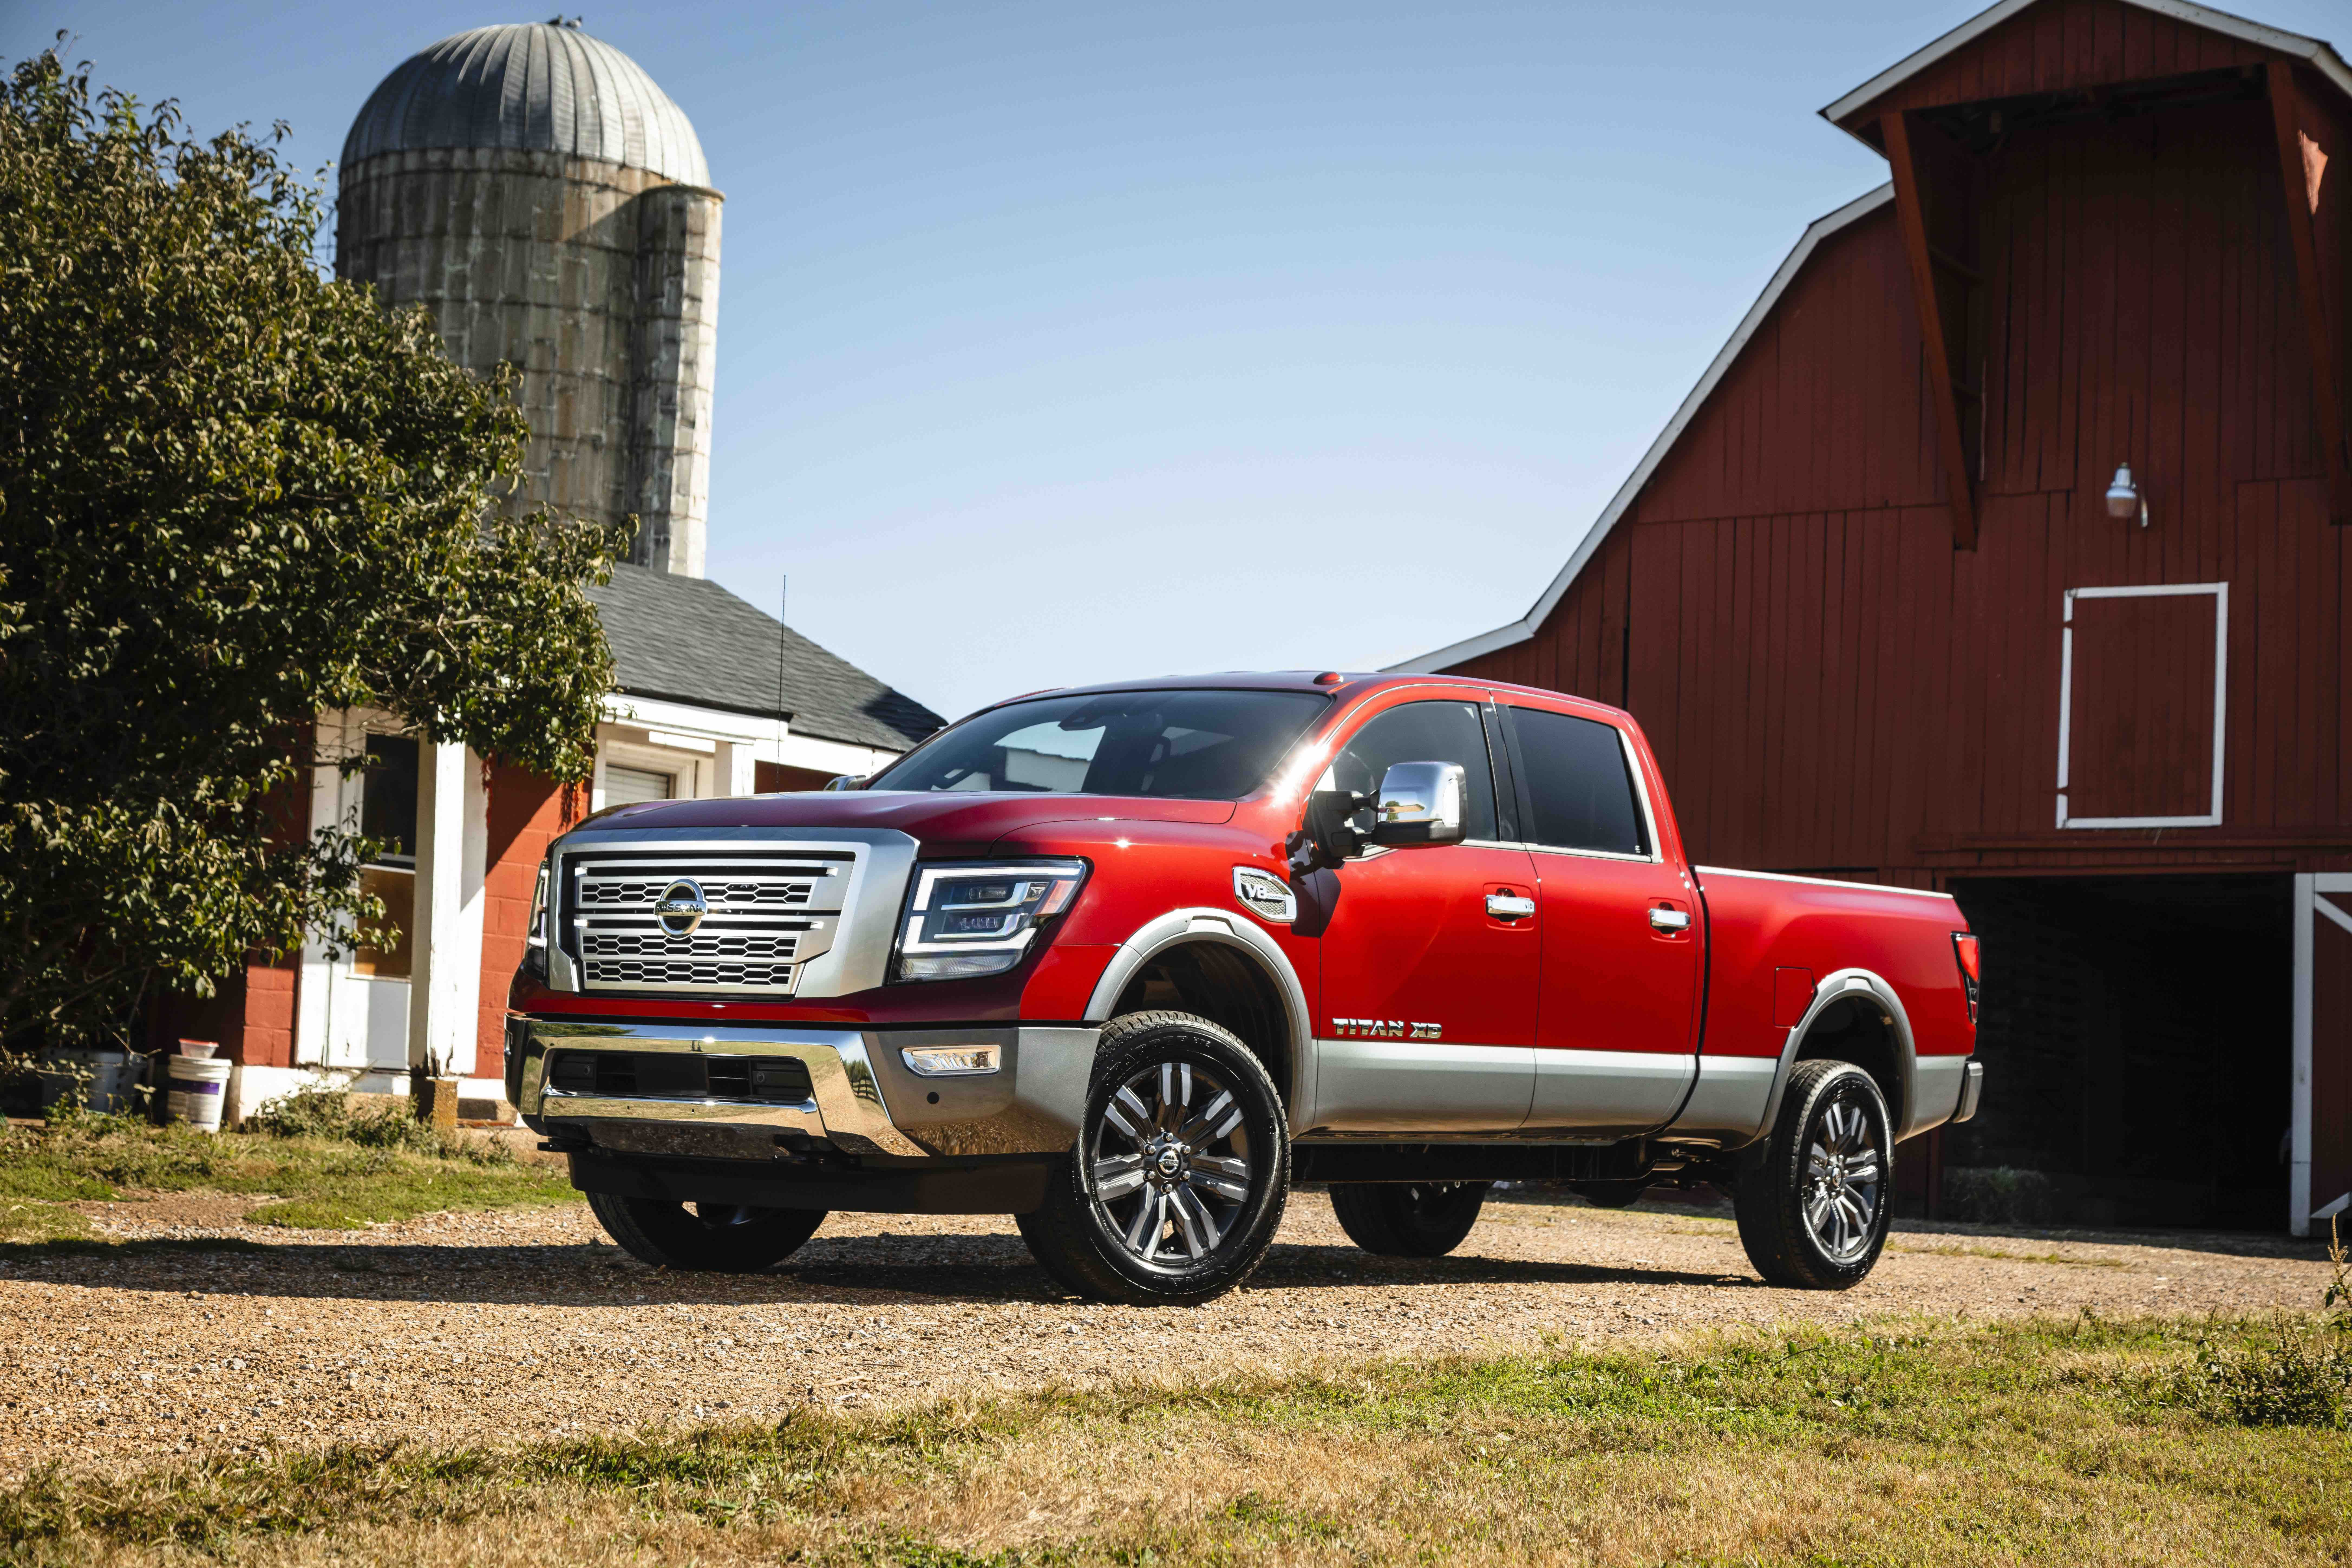 The 2020 Nissan Titan Xd Platinum Reserve Is Bolder More Capable More Comfortable And Features Standard Nissan Safety Sh Nissan Titan Nissan Titan Xd Nissan